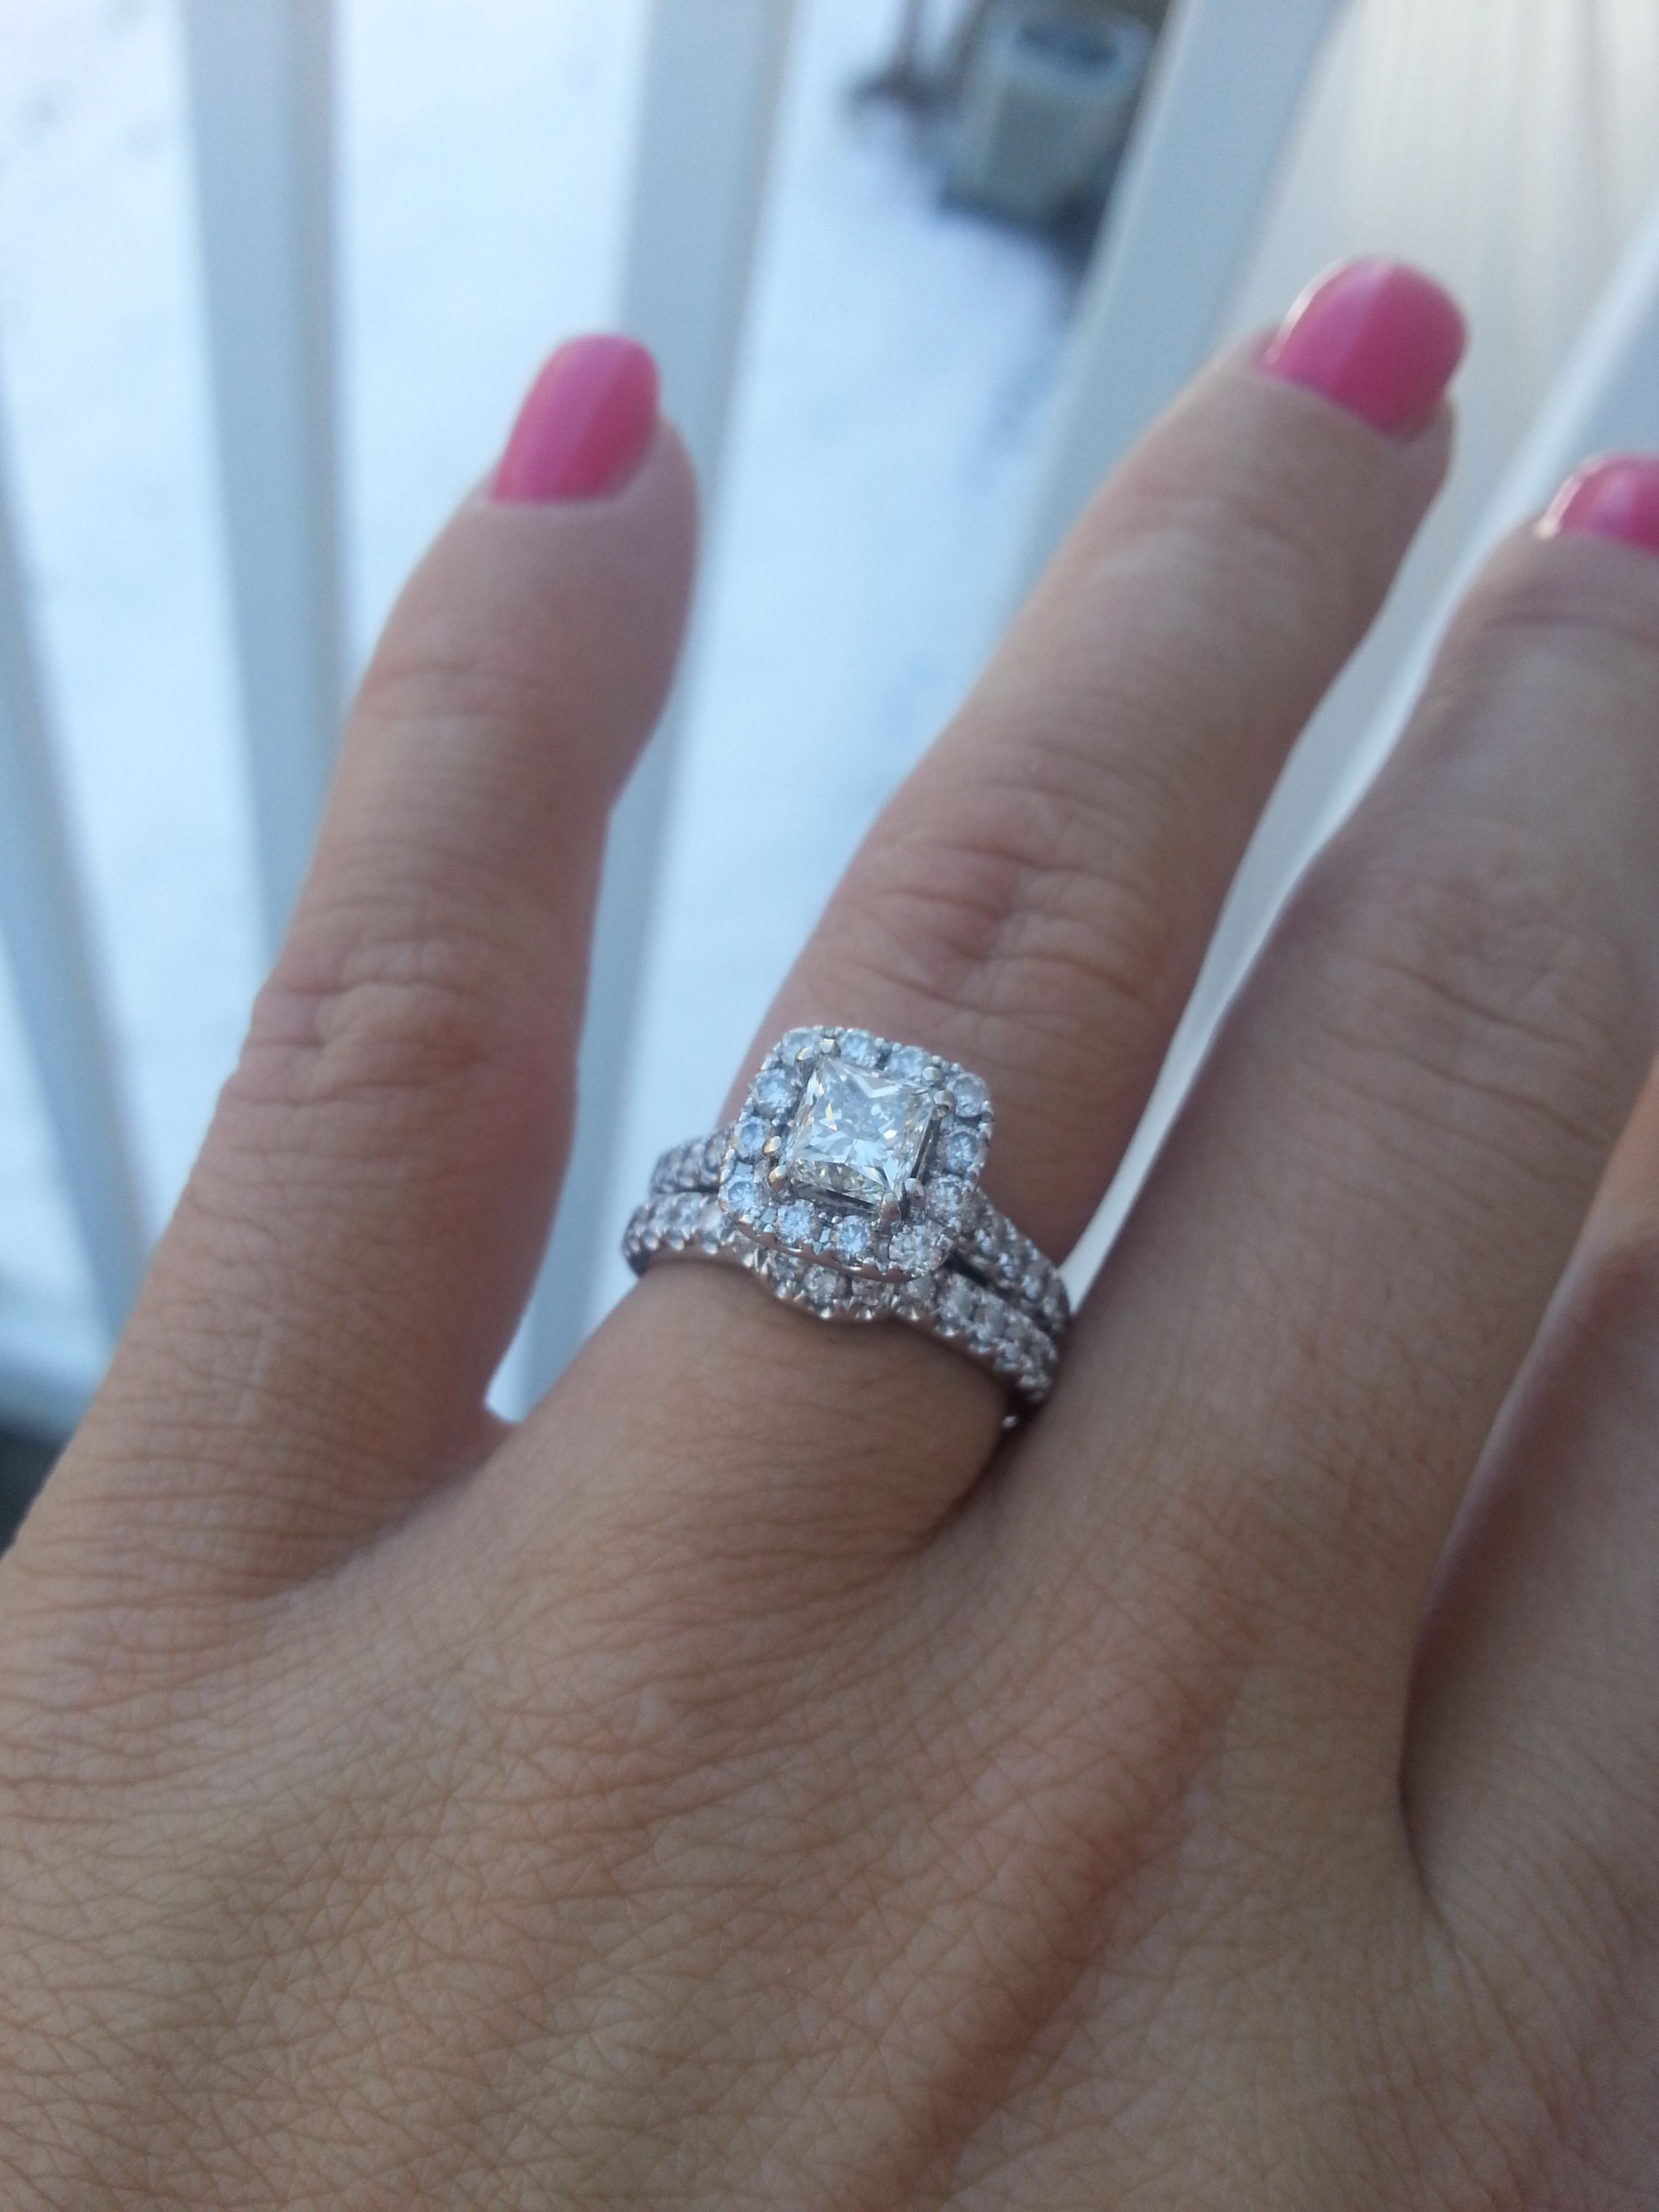 the princess cut is the second most popular cut shape for diamonds